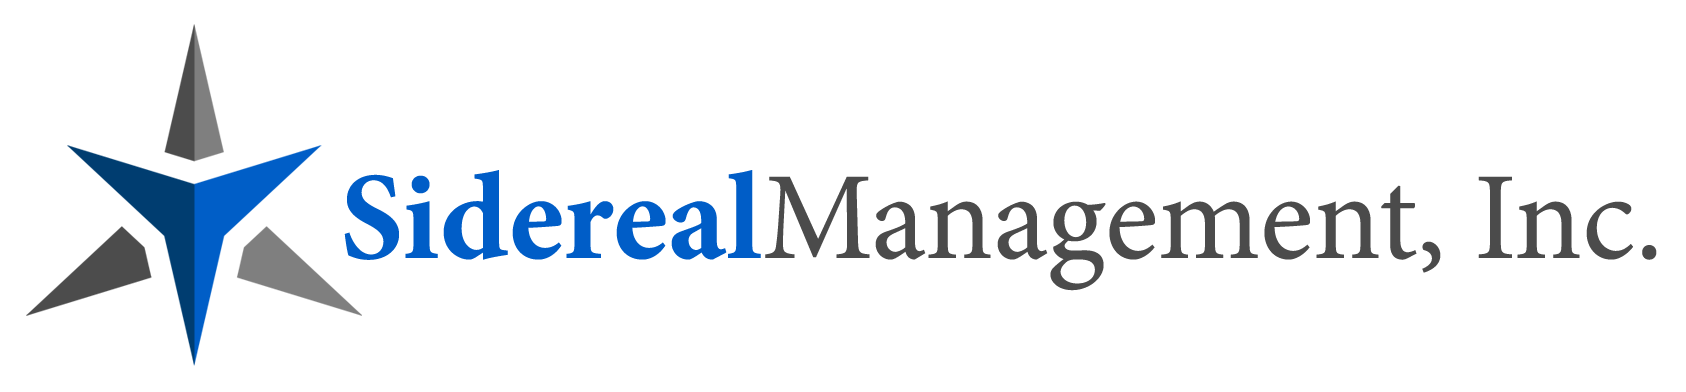 Sidereal Management Inc